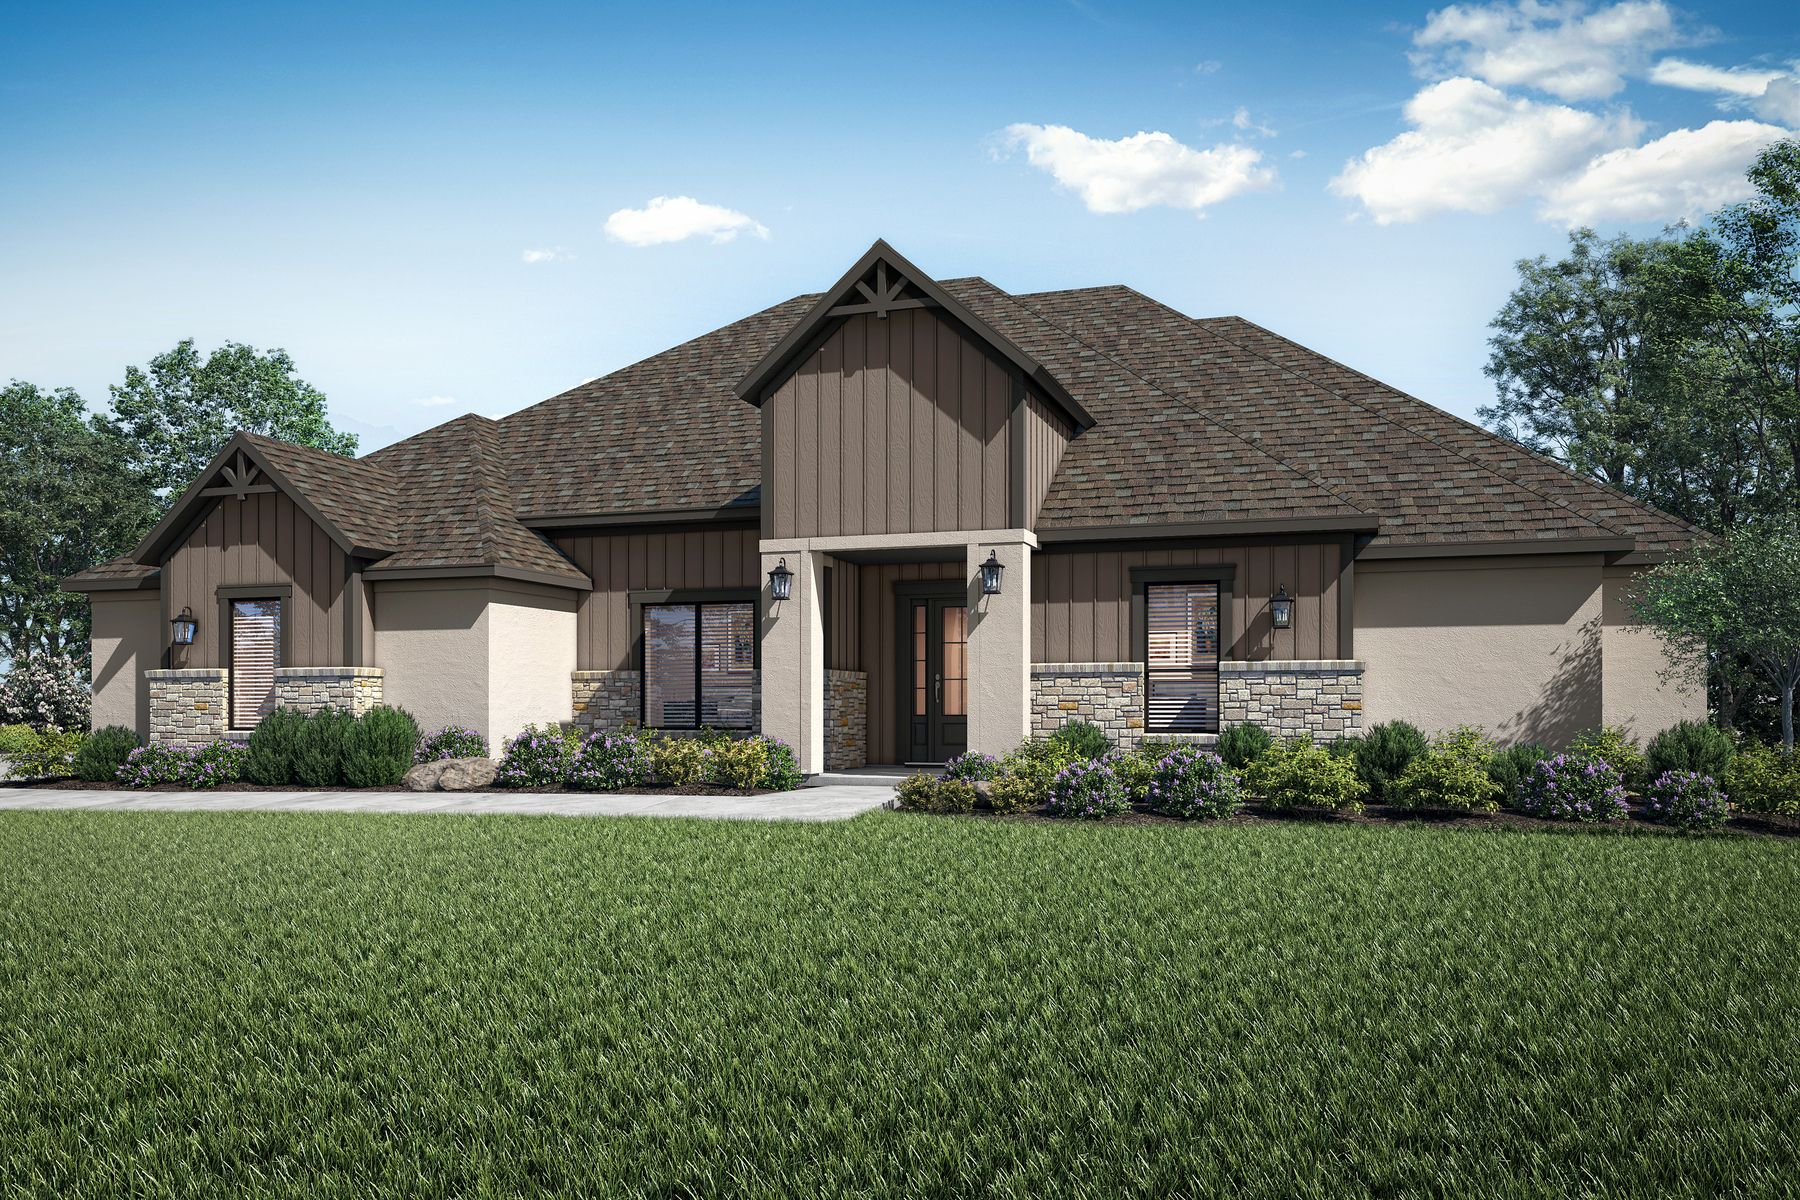 The Timberline by Terrata Homes:The stunning Timberline is a luxurious two-story home at Spicewood Trails.